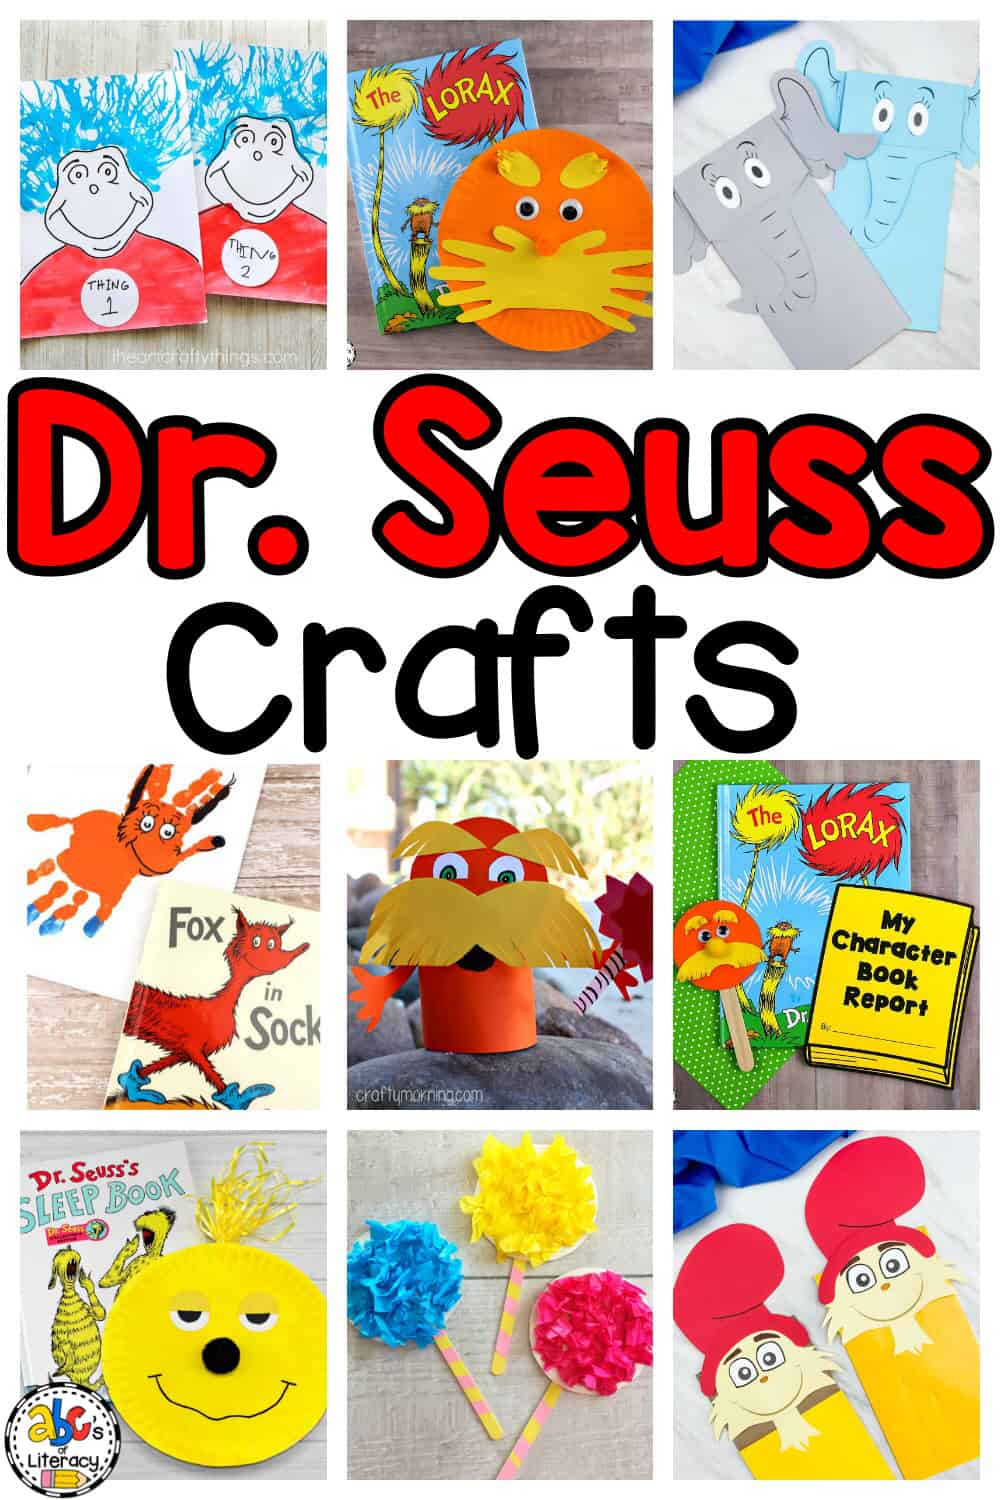 Dr. Seuss Inspired Crafts for Kids Roundup